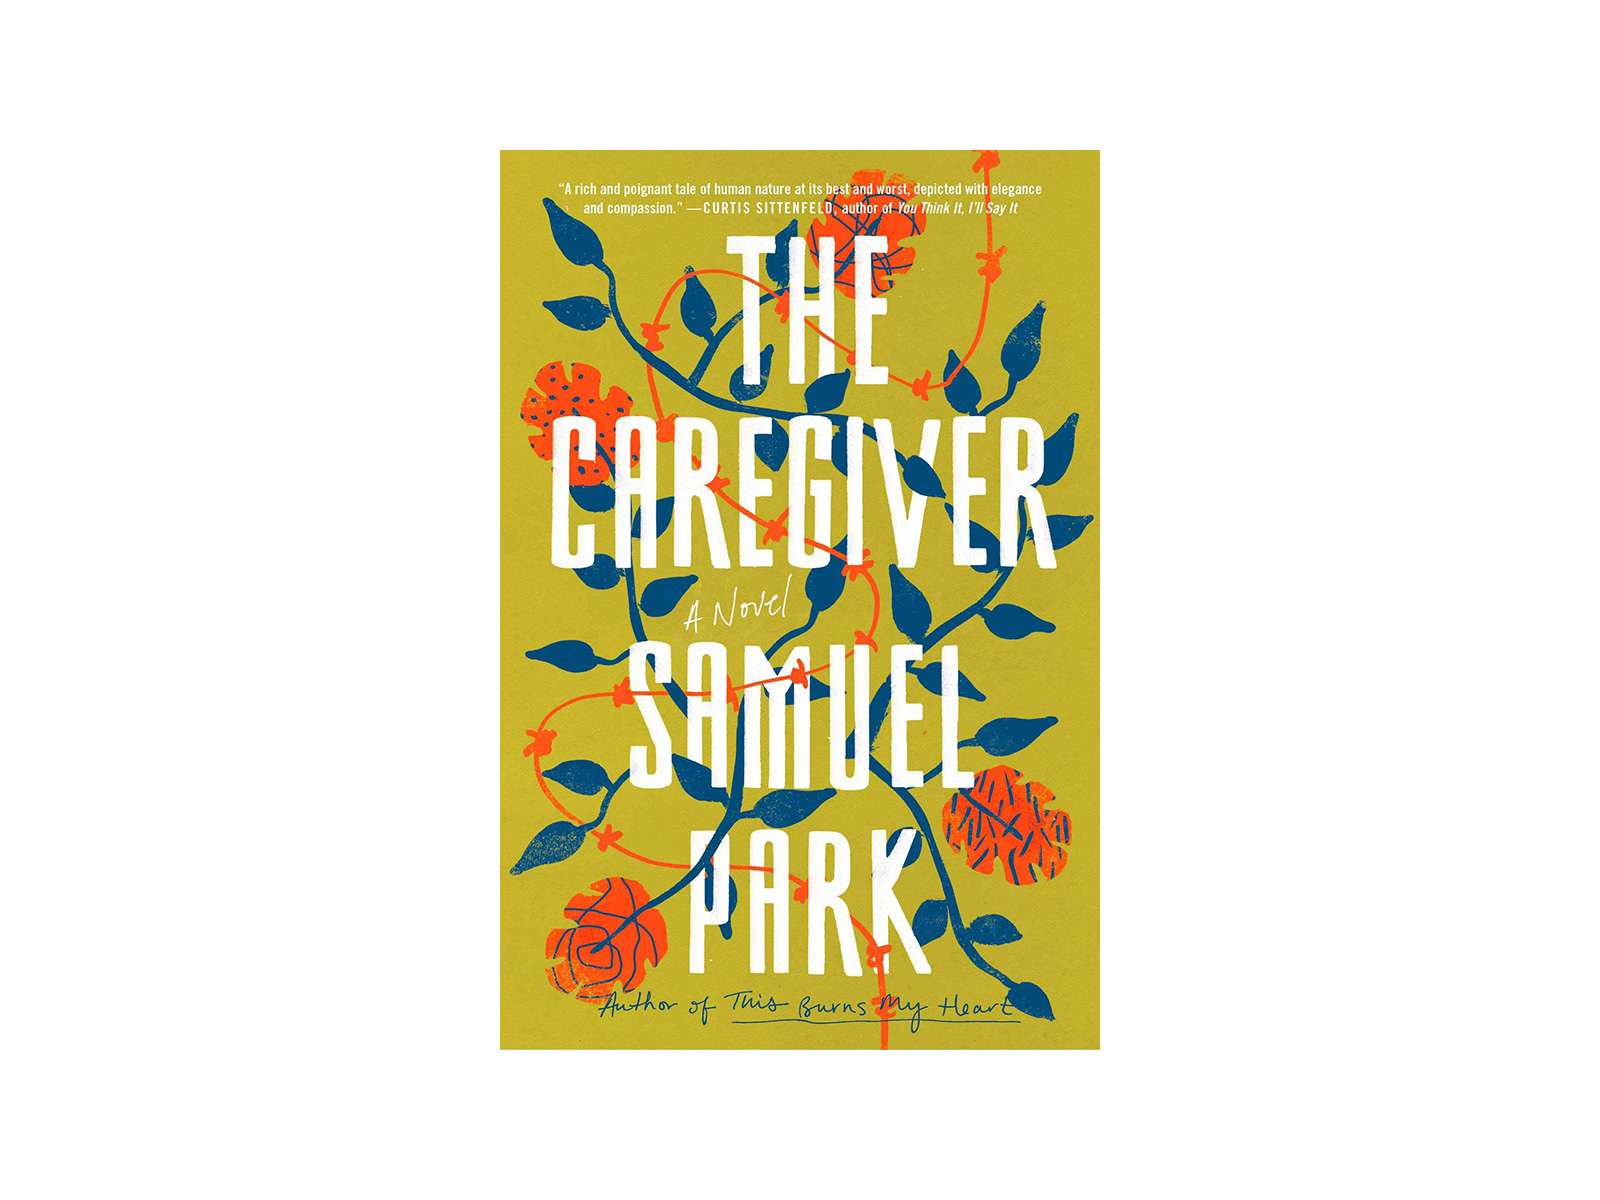 Best Books 2018 The Caregiver, by Samuel Park